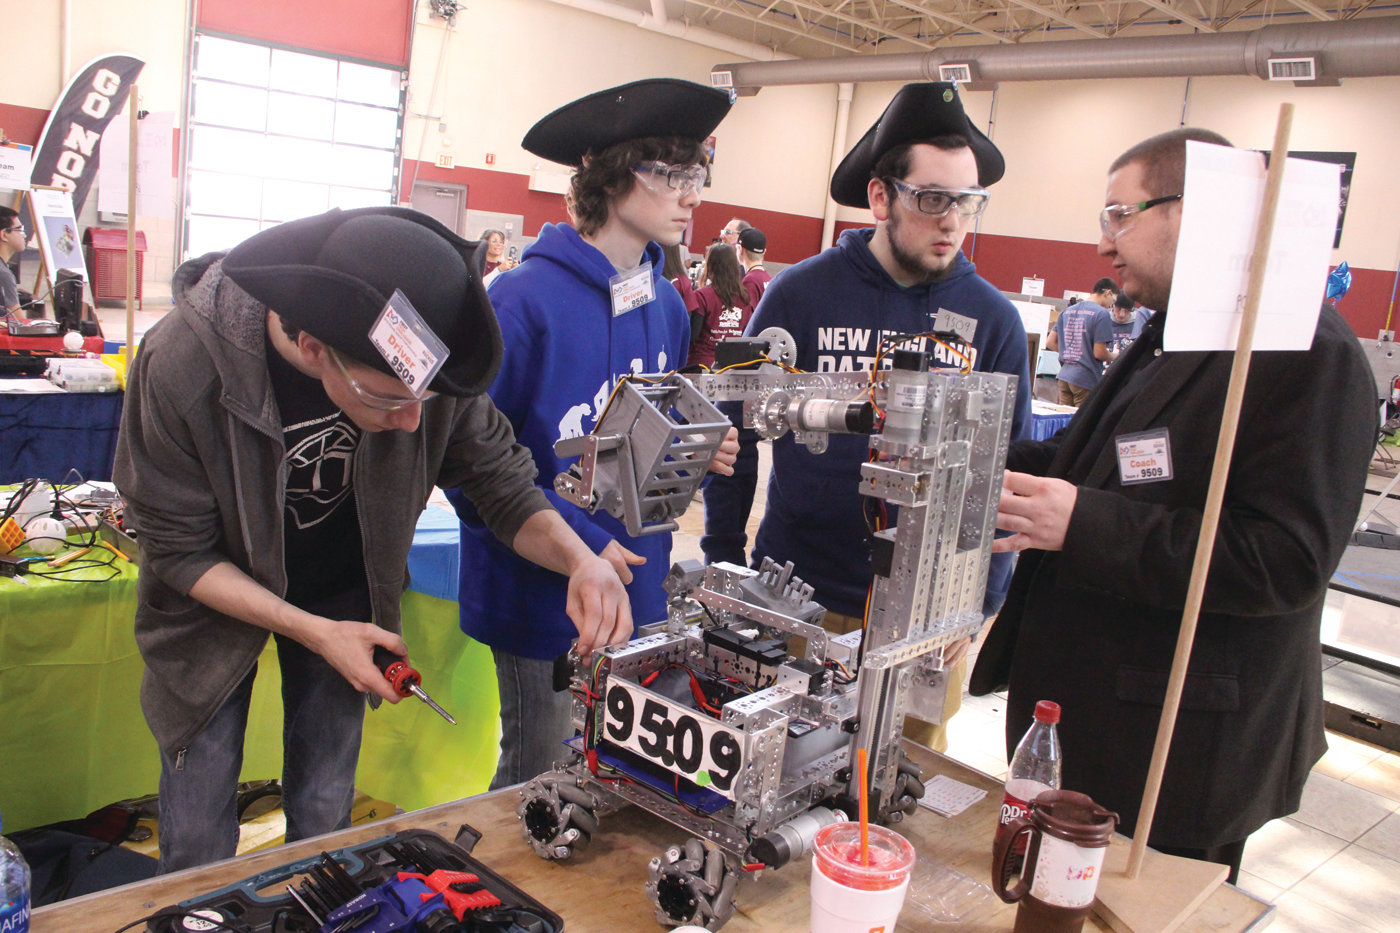 THE PATRIOTS: Pilgrim High School team Patriots make adjustments to their robot with the advice of coach Chris Uth. Pictured from left are Jacob Trivisonno, Kyle Pincins and Ben Smith.